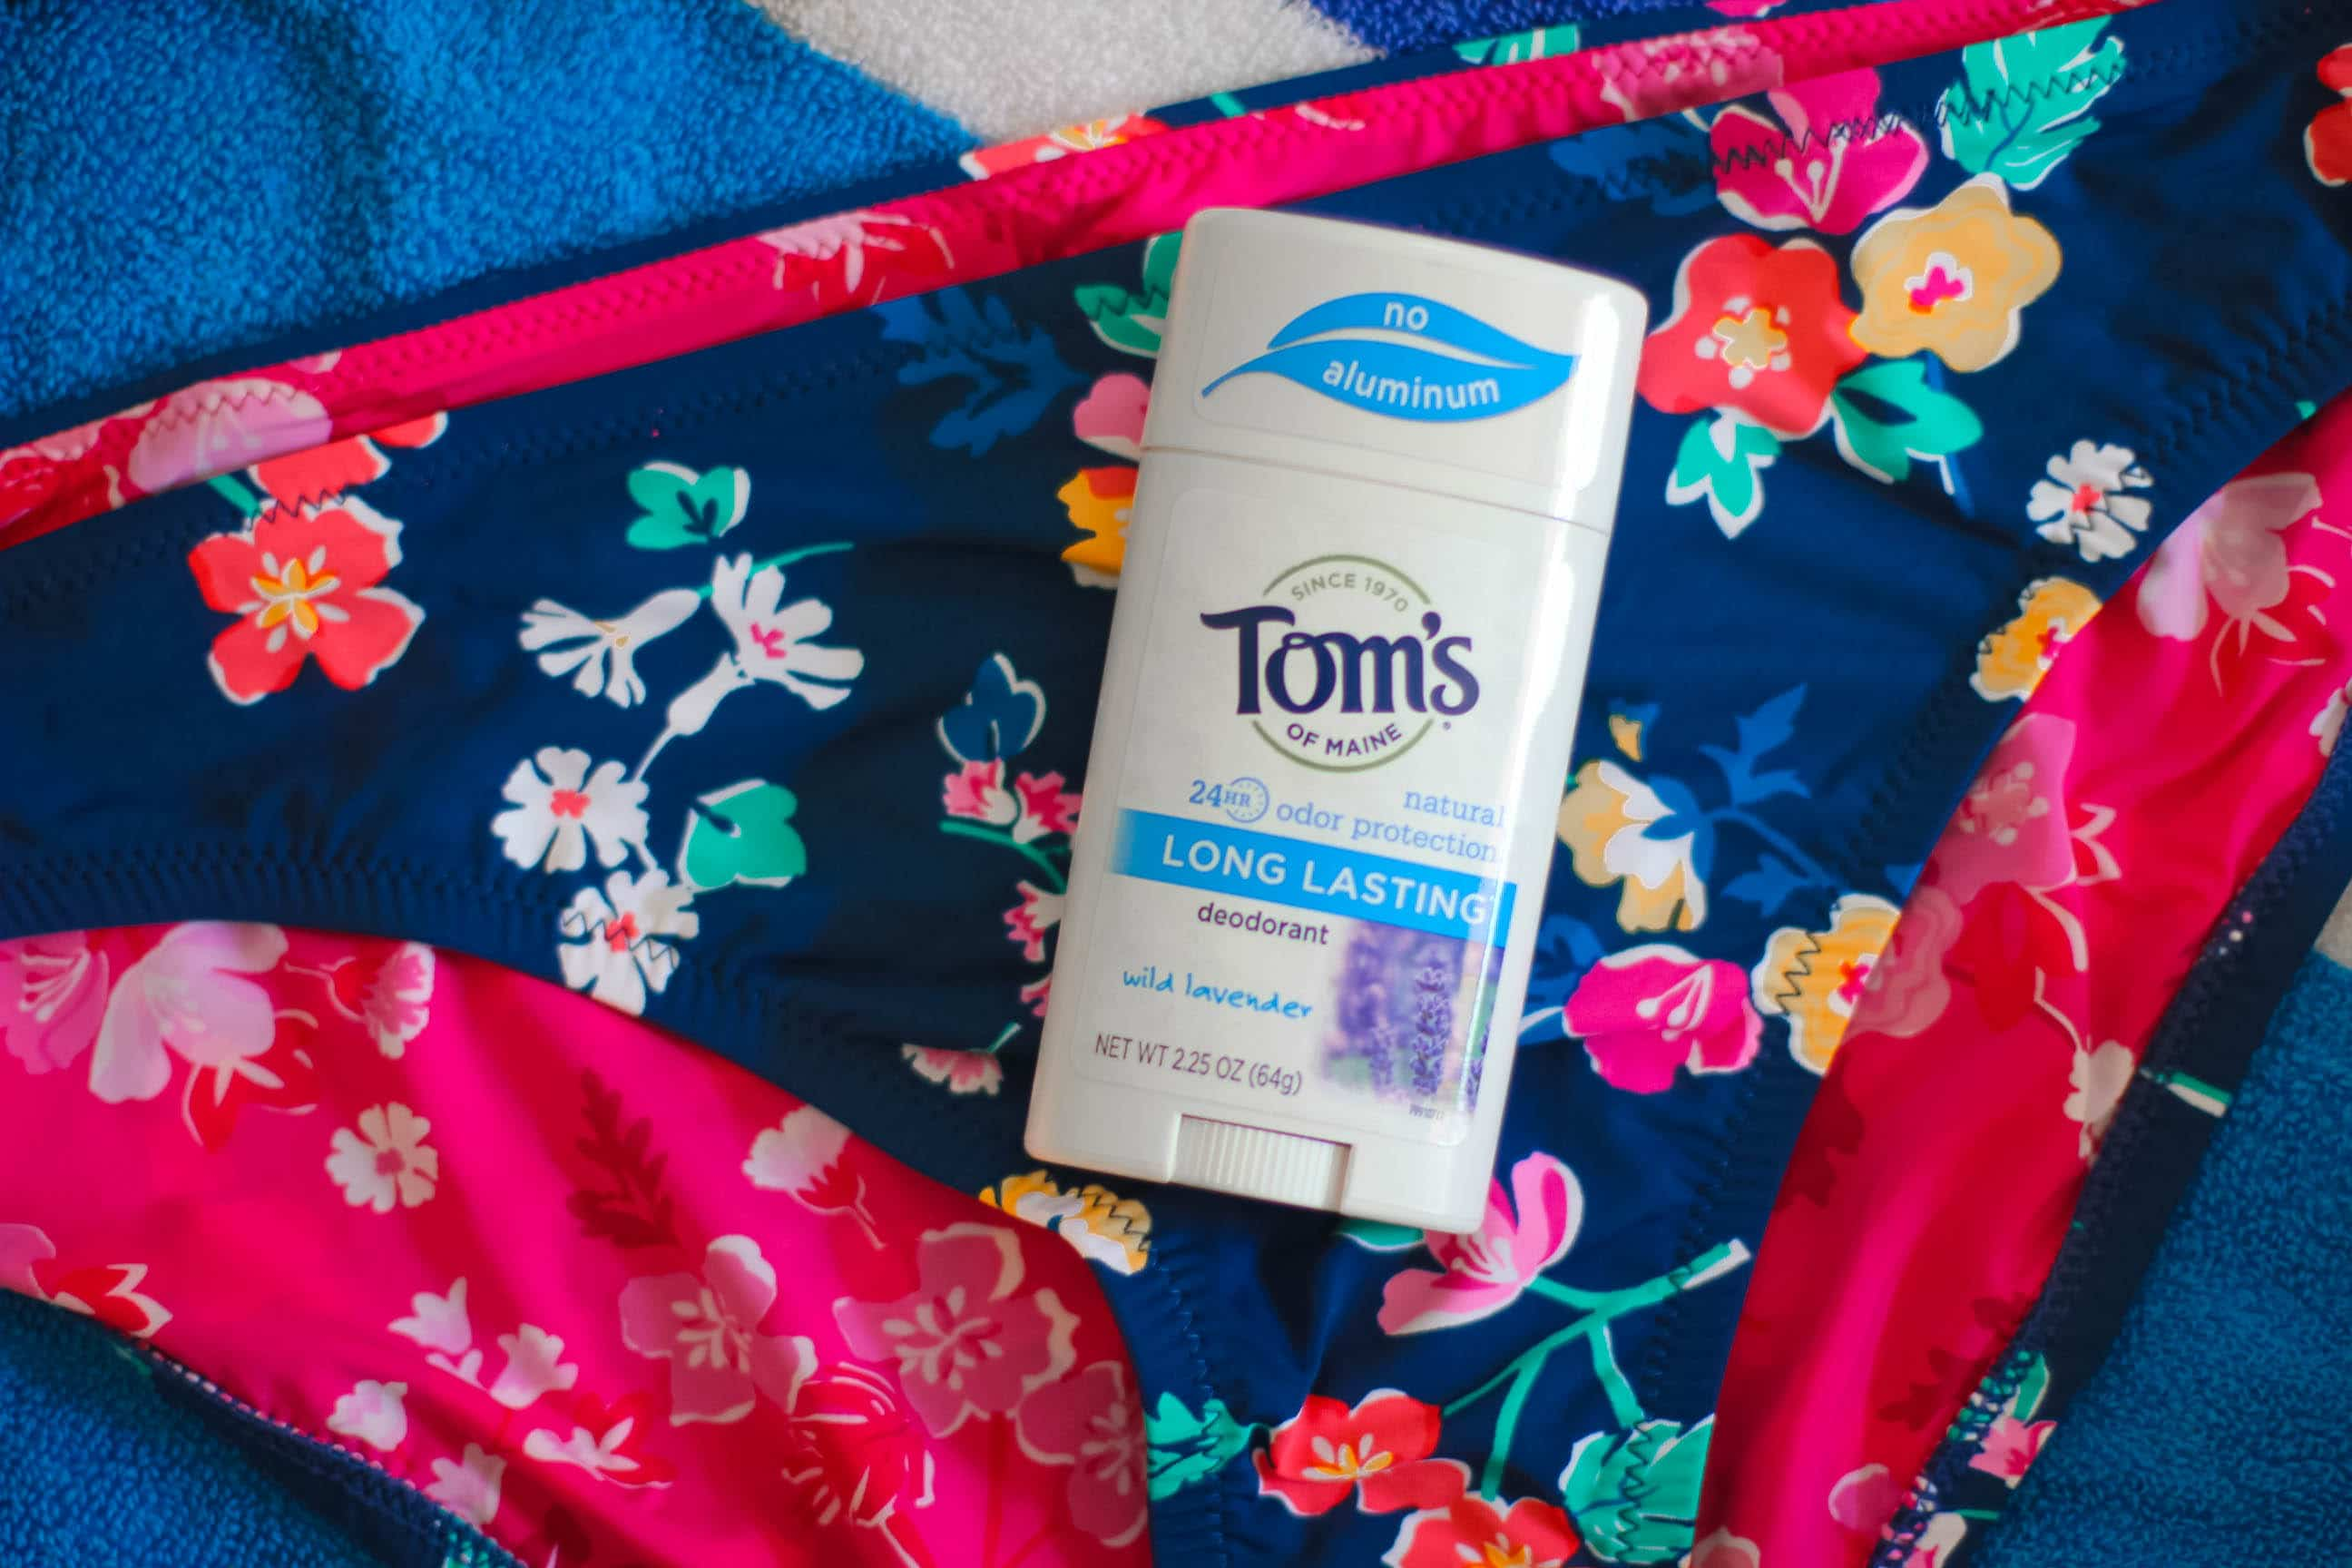 missyonmadison, missyonmadison instagram, melissa tierney, melissa tierney instagram, fashion blogger, beauty blogger, beauty buys, toms of maine, deodorant, stay fresh, fresh summer picks, whats in my bag, whats in my beach bag, hygiene, summer hygiene tips,